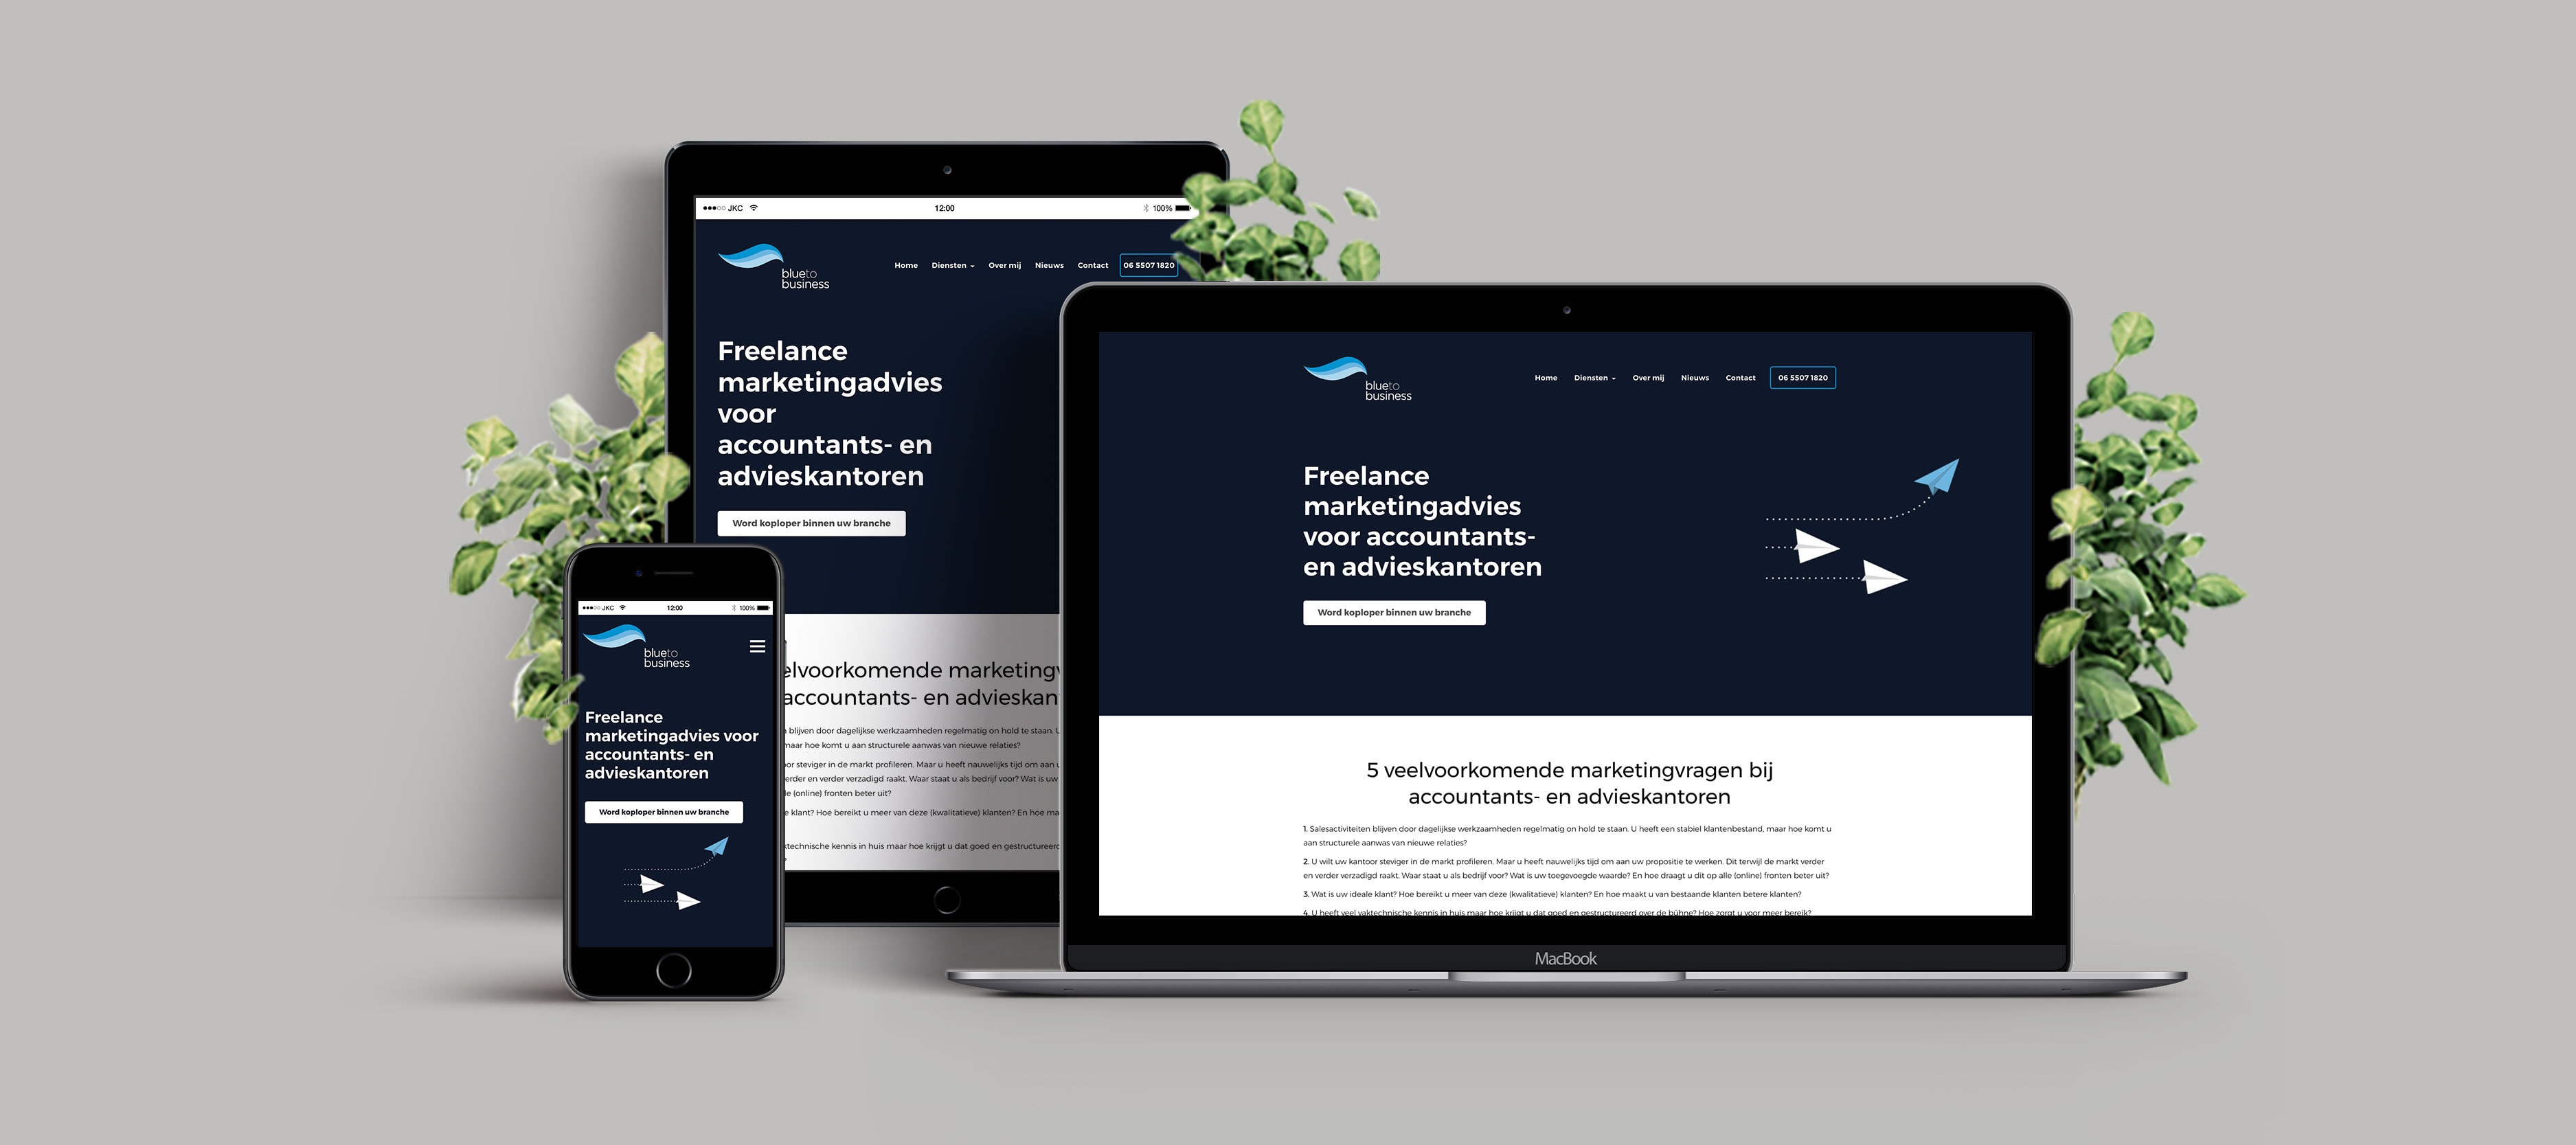 Bekijk de case over de nieuwe website voor Blue to Business - WordPress website ontwikkeling en webhosting - JKC Media B.V.